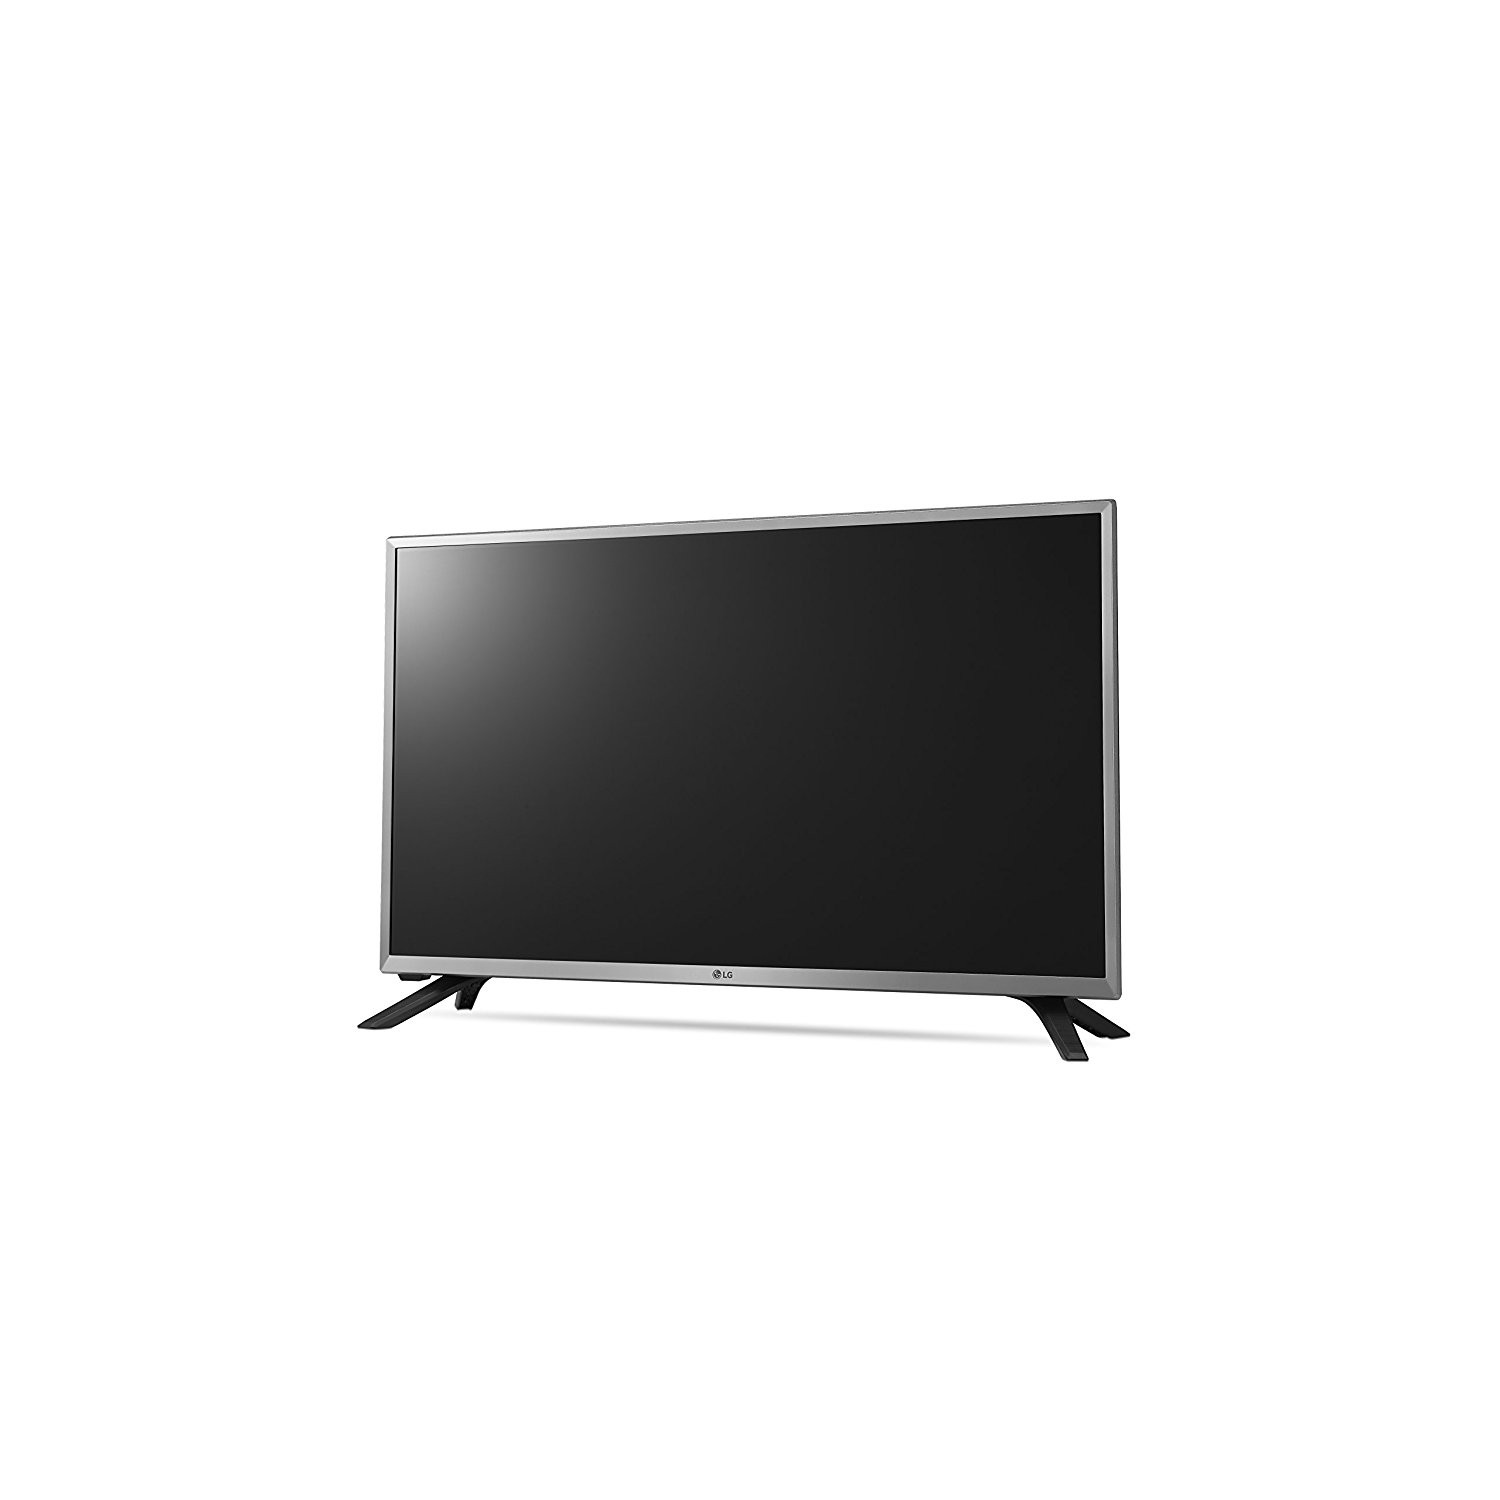 Televisor Smart Tv 32 Impresionante Lg Televisor Smart Led Hdmi Tv 32″ Lj550b Of 50  Magnífica Televisor Smart Tv 32